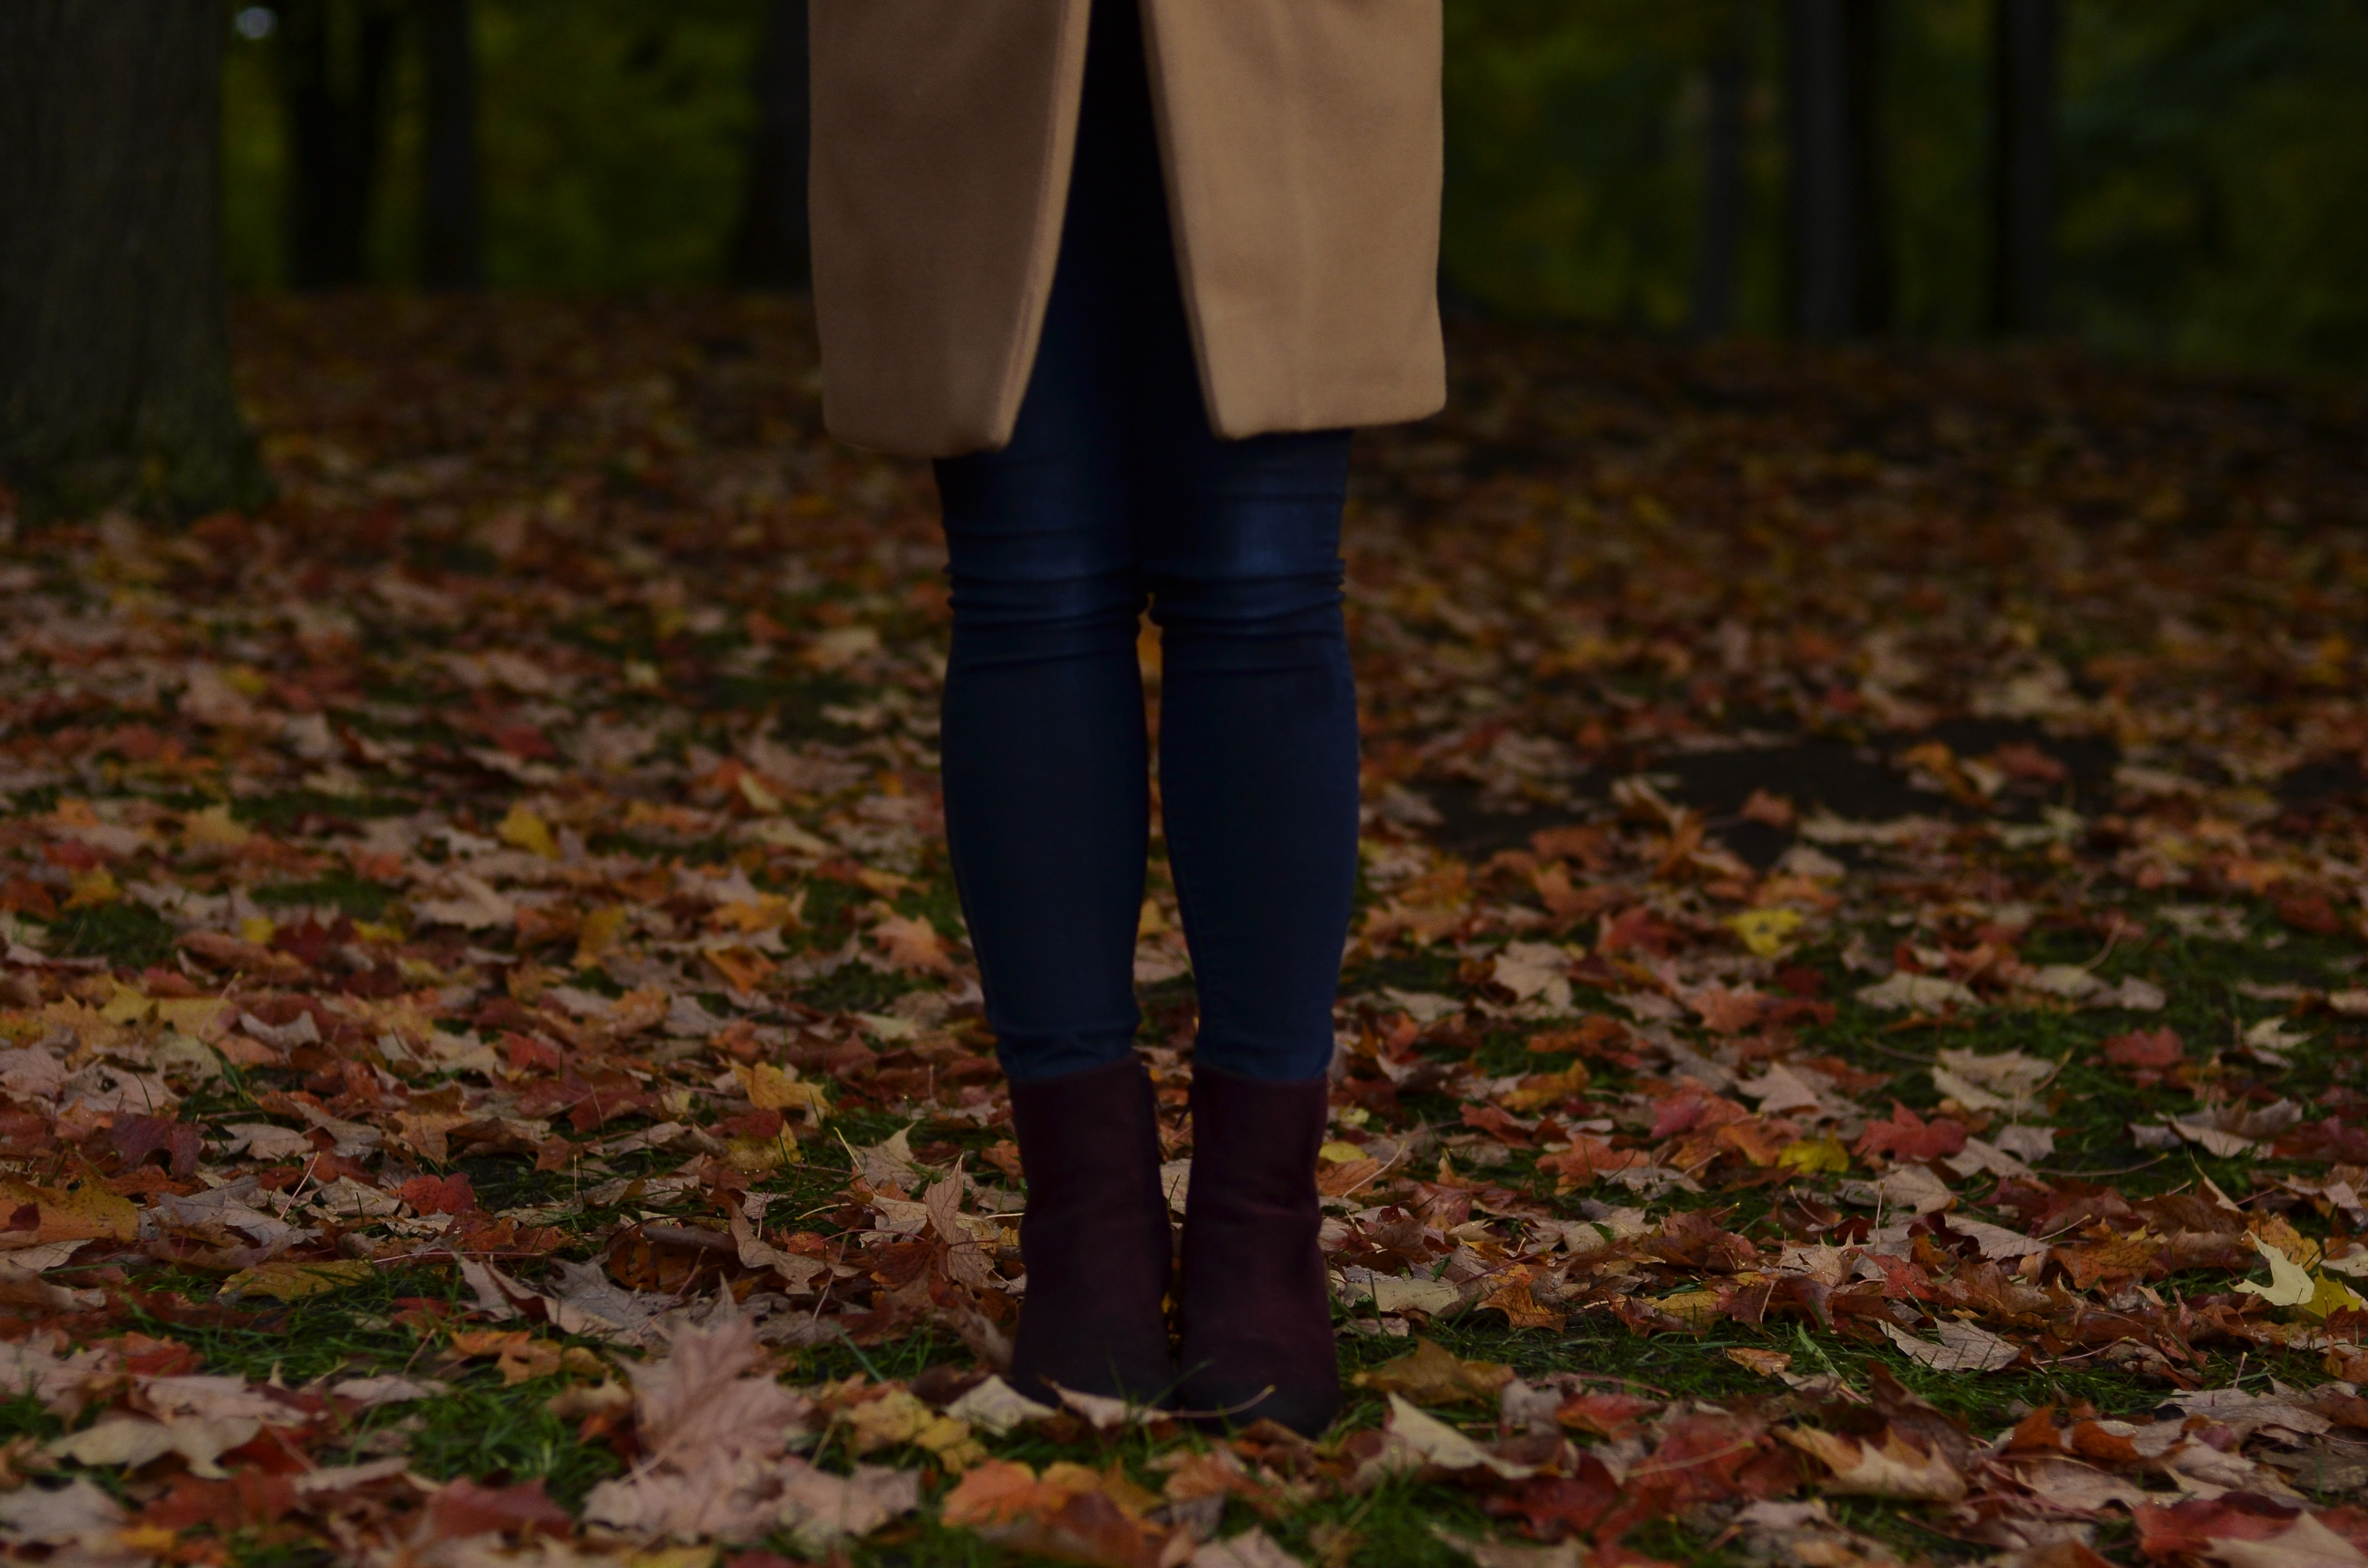 person walking on ground surrounded by dried leaves